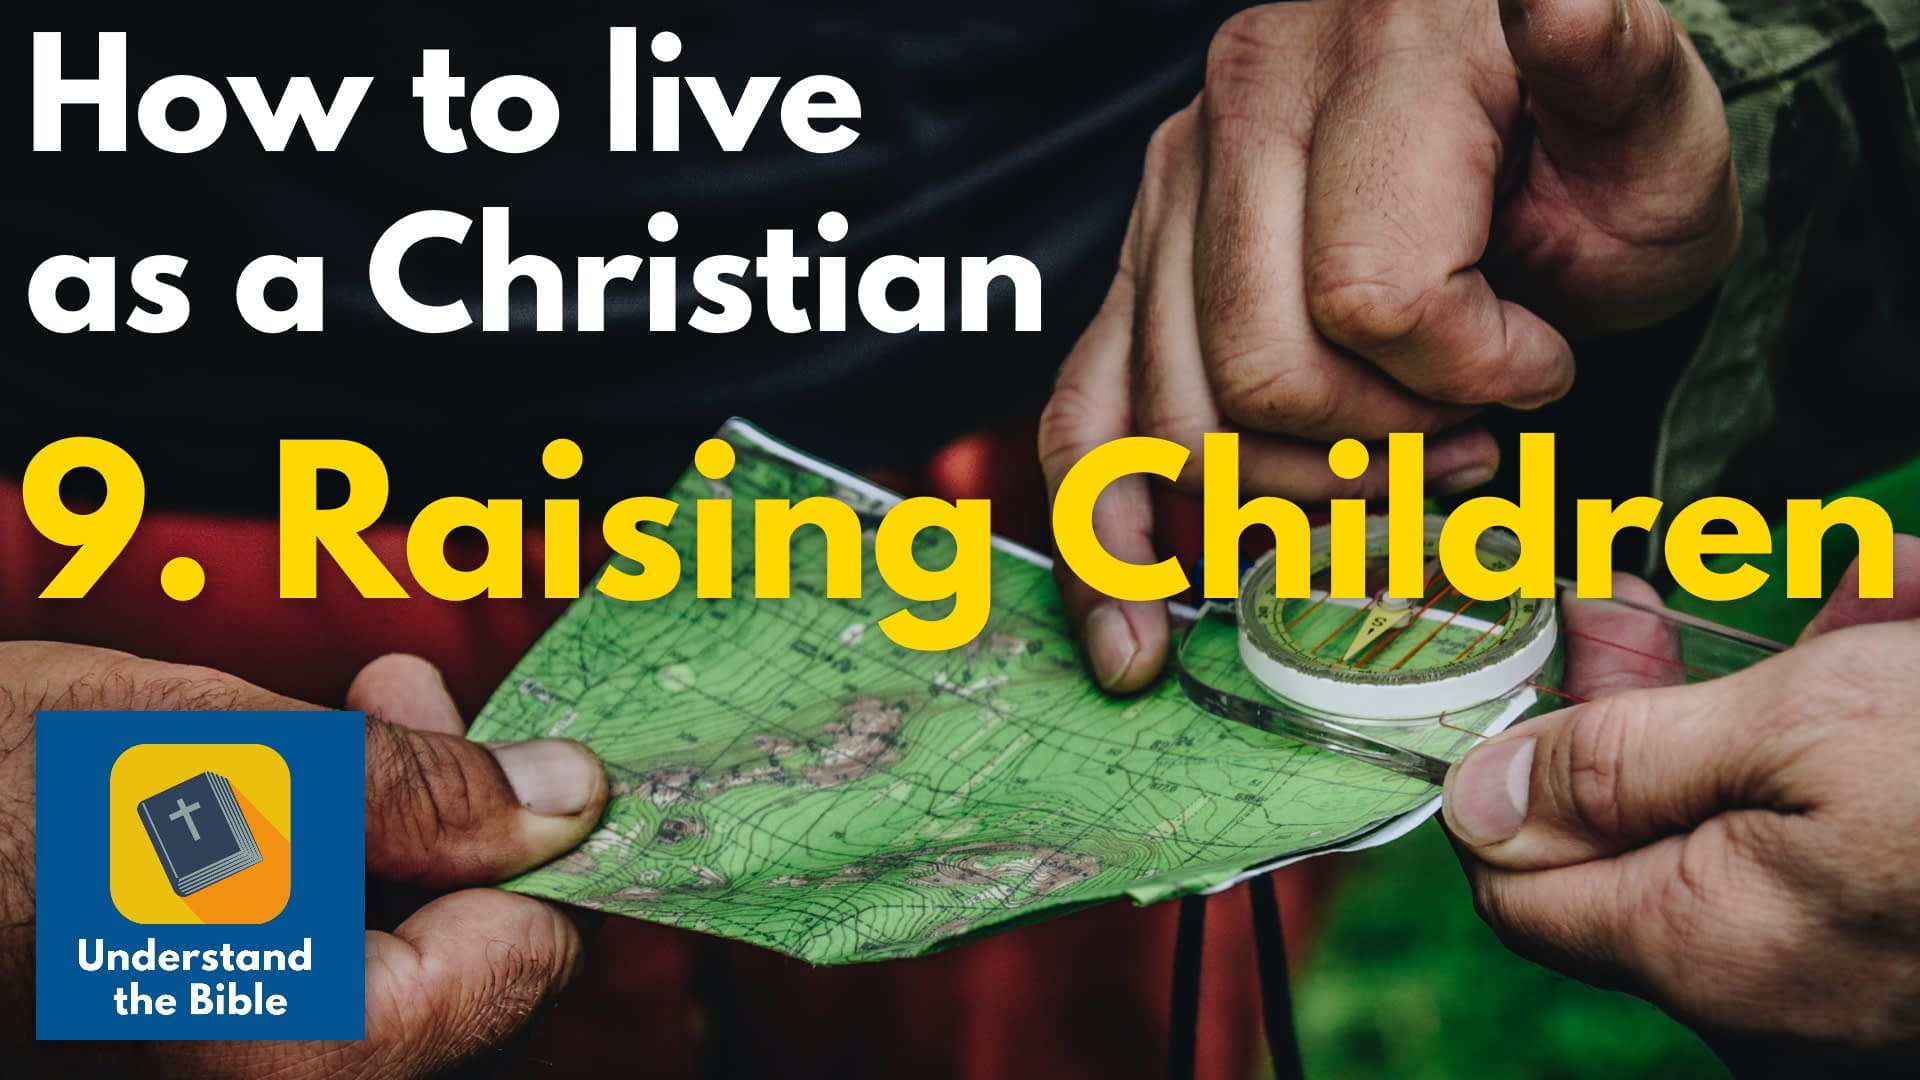 Raising Children: Final part of How to Live as a Christian course